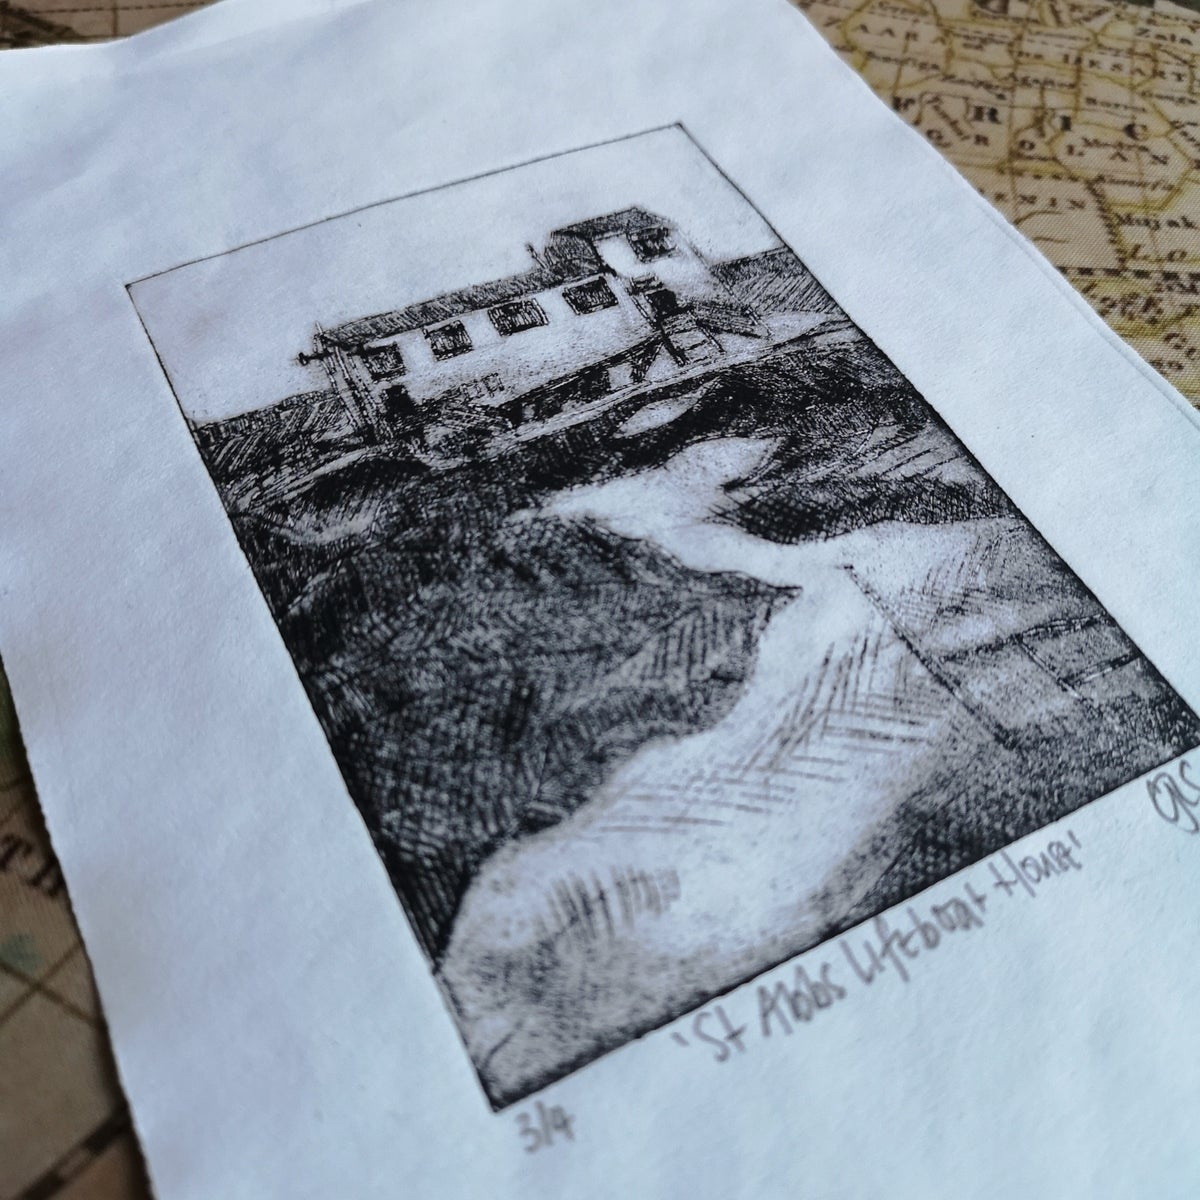 Image of St Abbs Lifeboat House Original Drypoint print 3/4